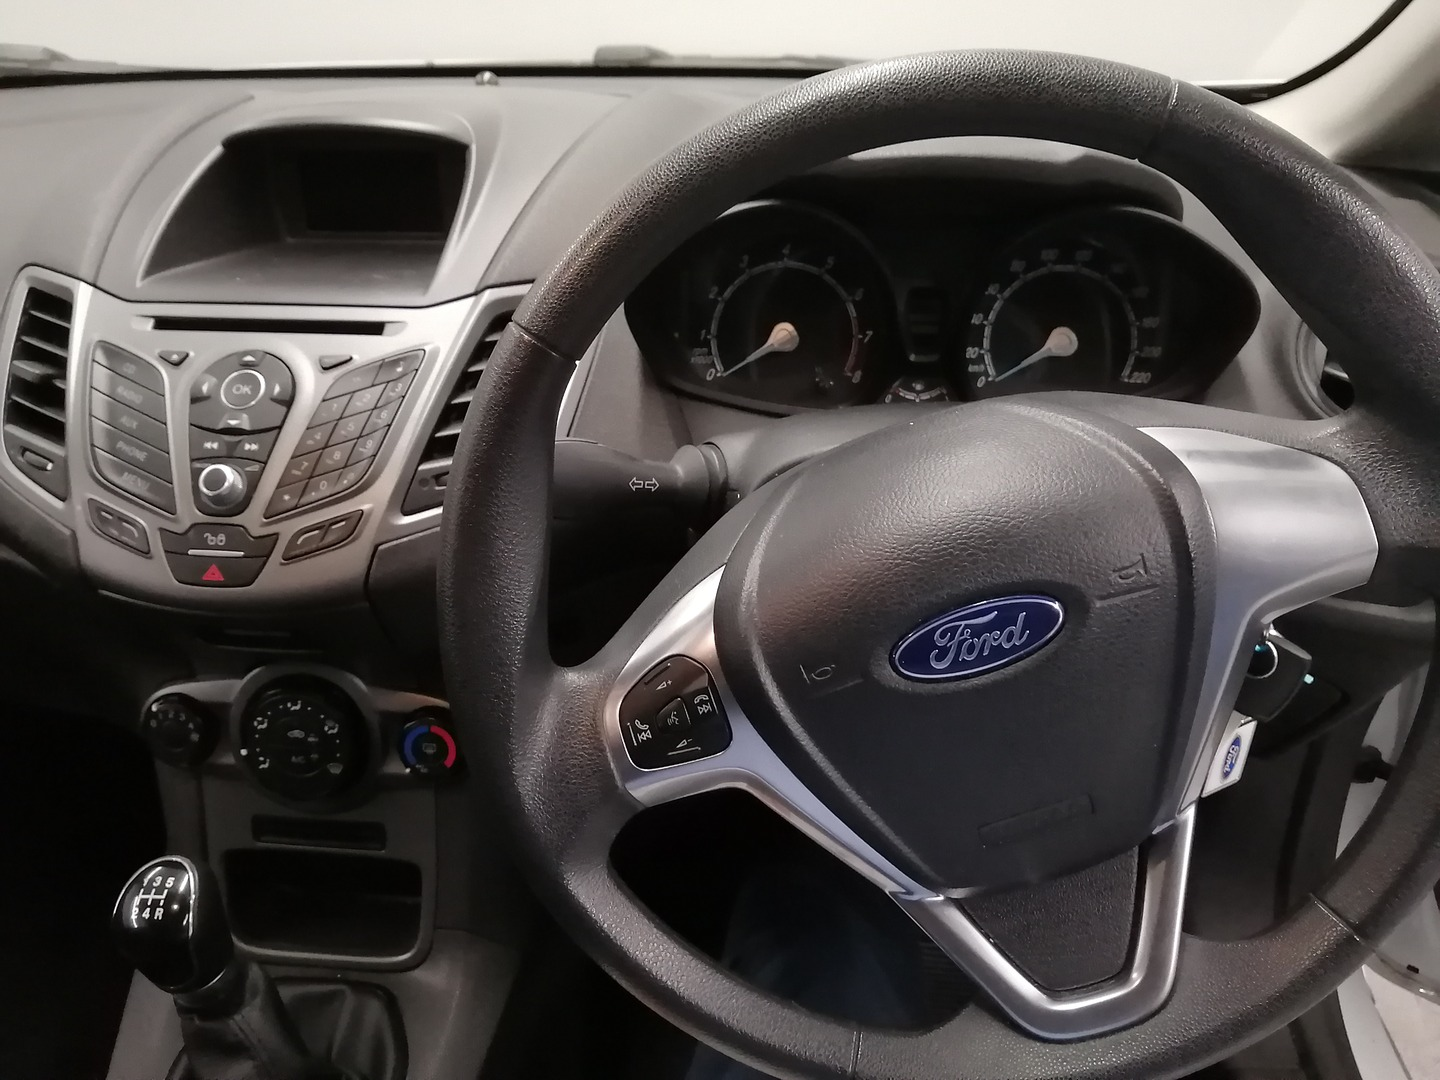 FORD 1.4 AMBIENTE 5 Dr Cape Town 8326507